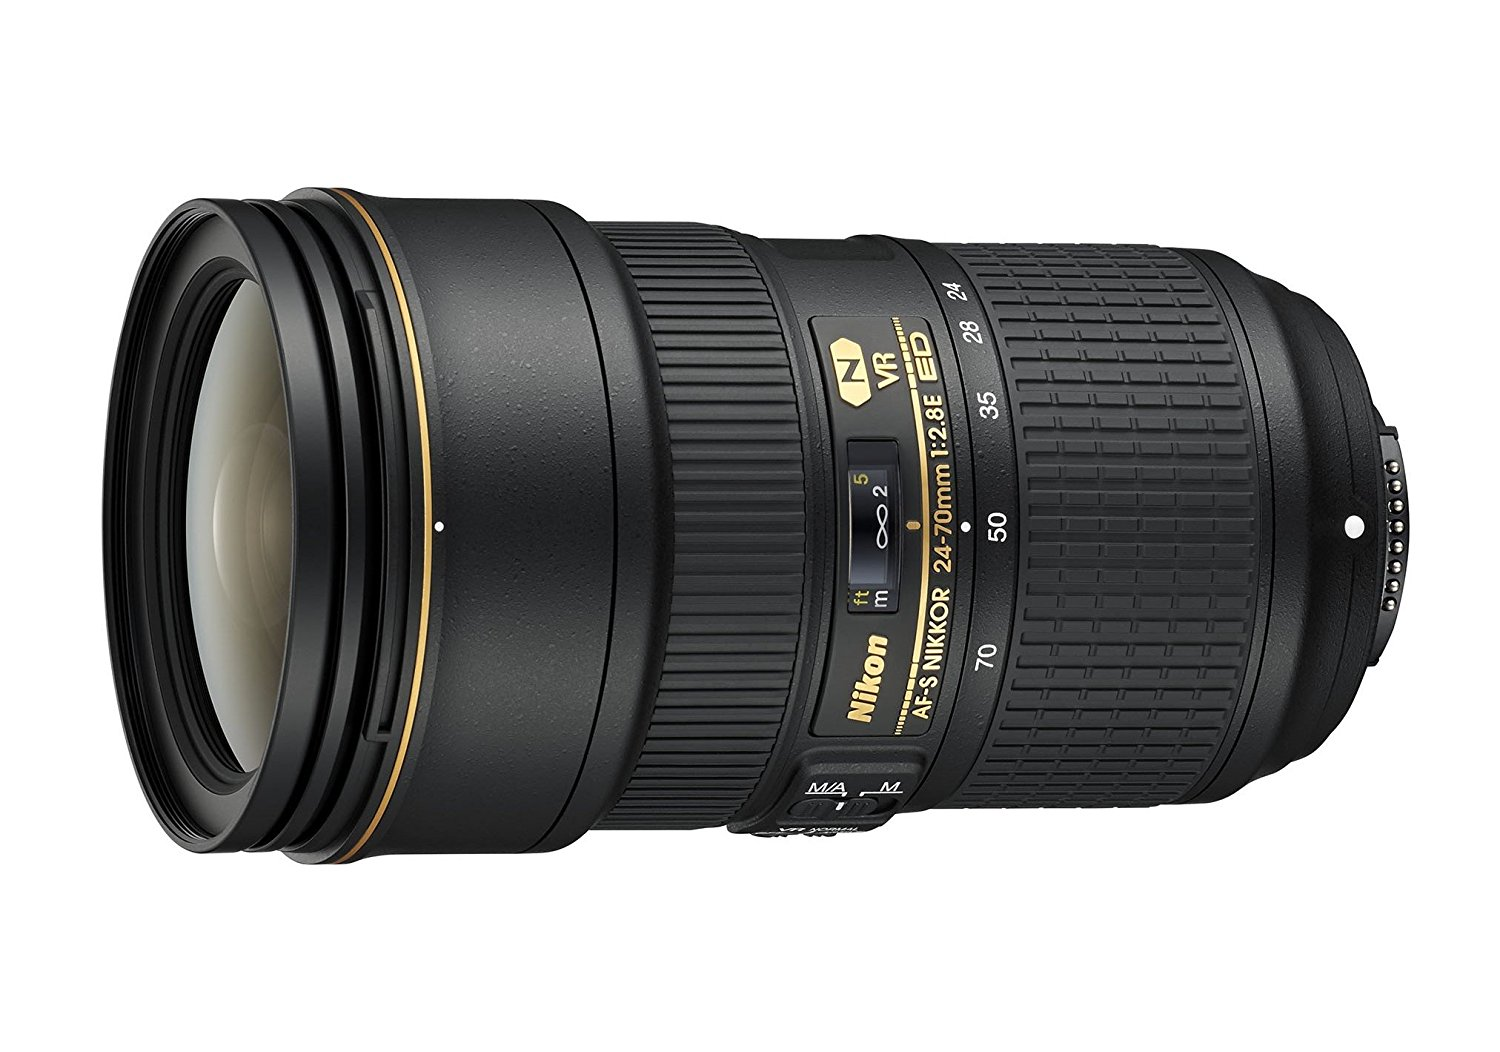 24-70mm full frame nikon lens